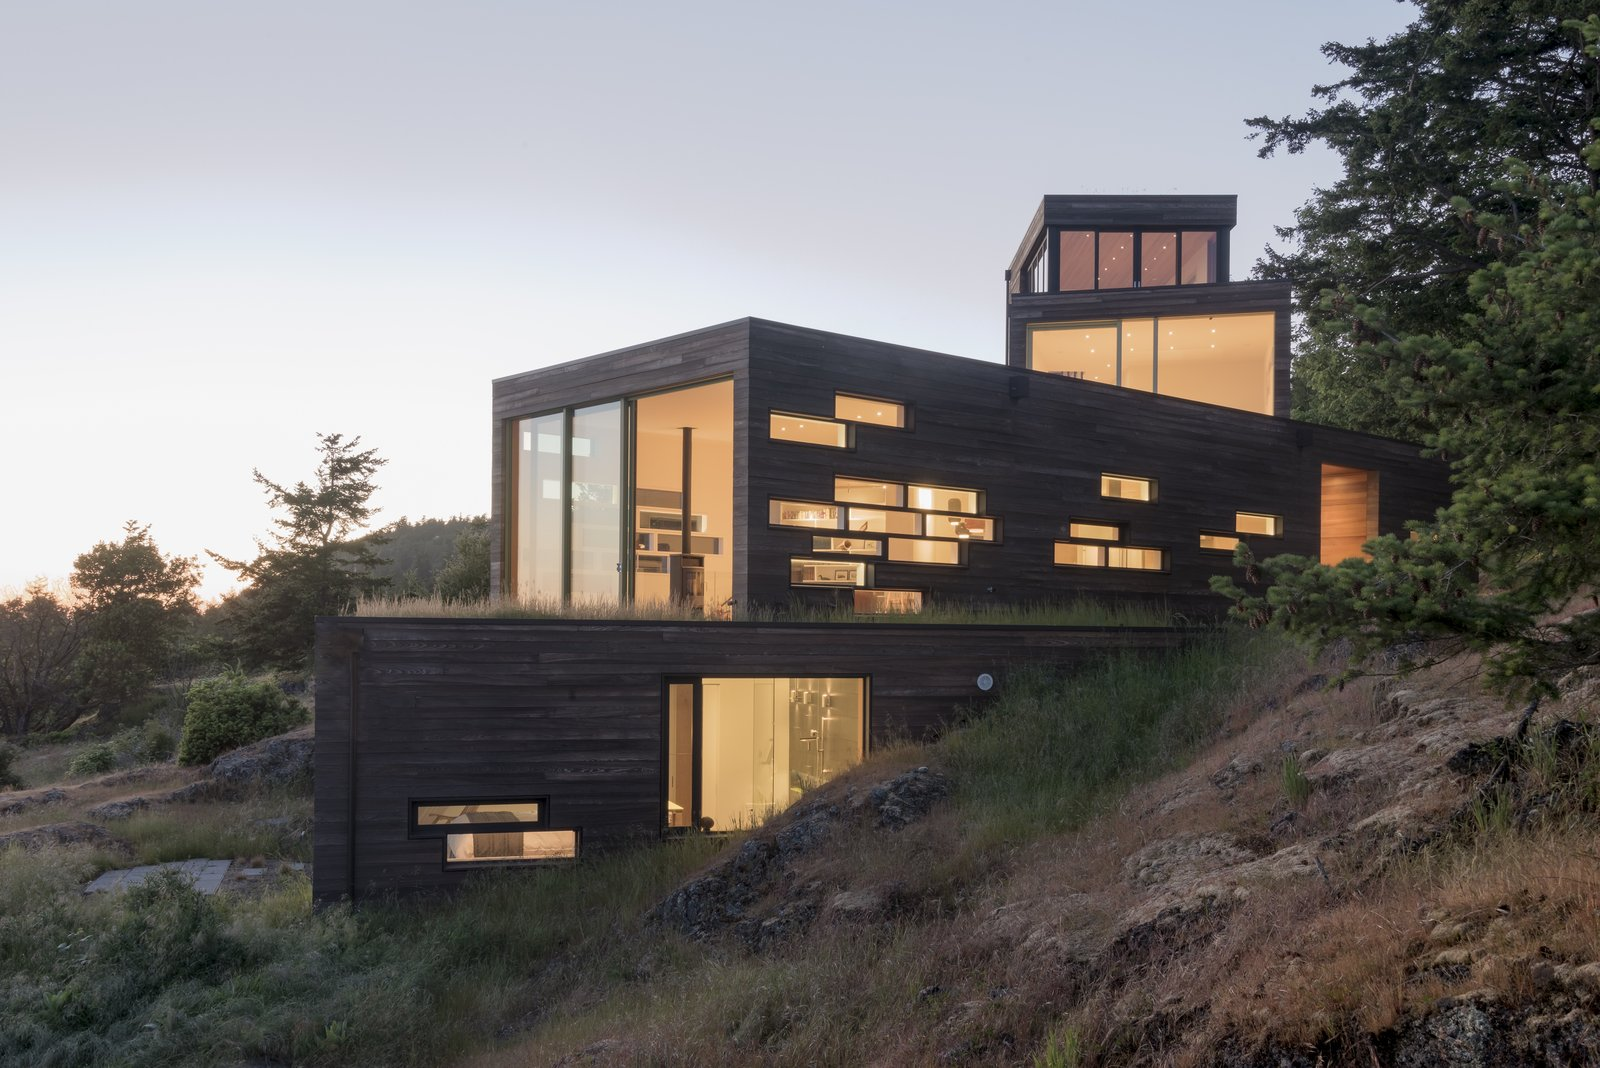 Exterior, House Building Type, Green Roof Material, and Wood Siding Material From below, the volumes seem to cascade down the hillside. Windows light up in a dramatic pattern at night, a sharp contrast to their subtle shapes during the day.  Bailer Hill by Prentiss + Balance + Wickline Architects